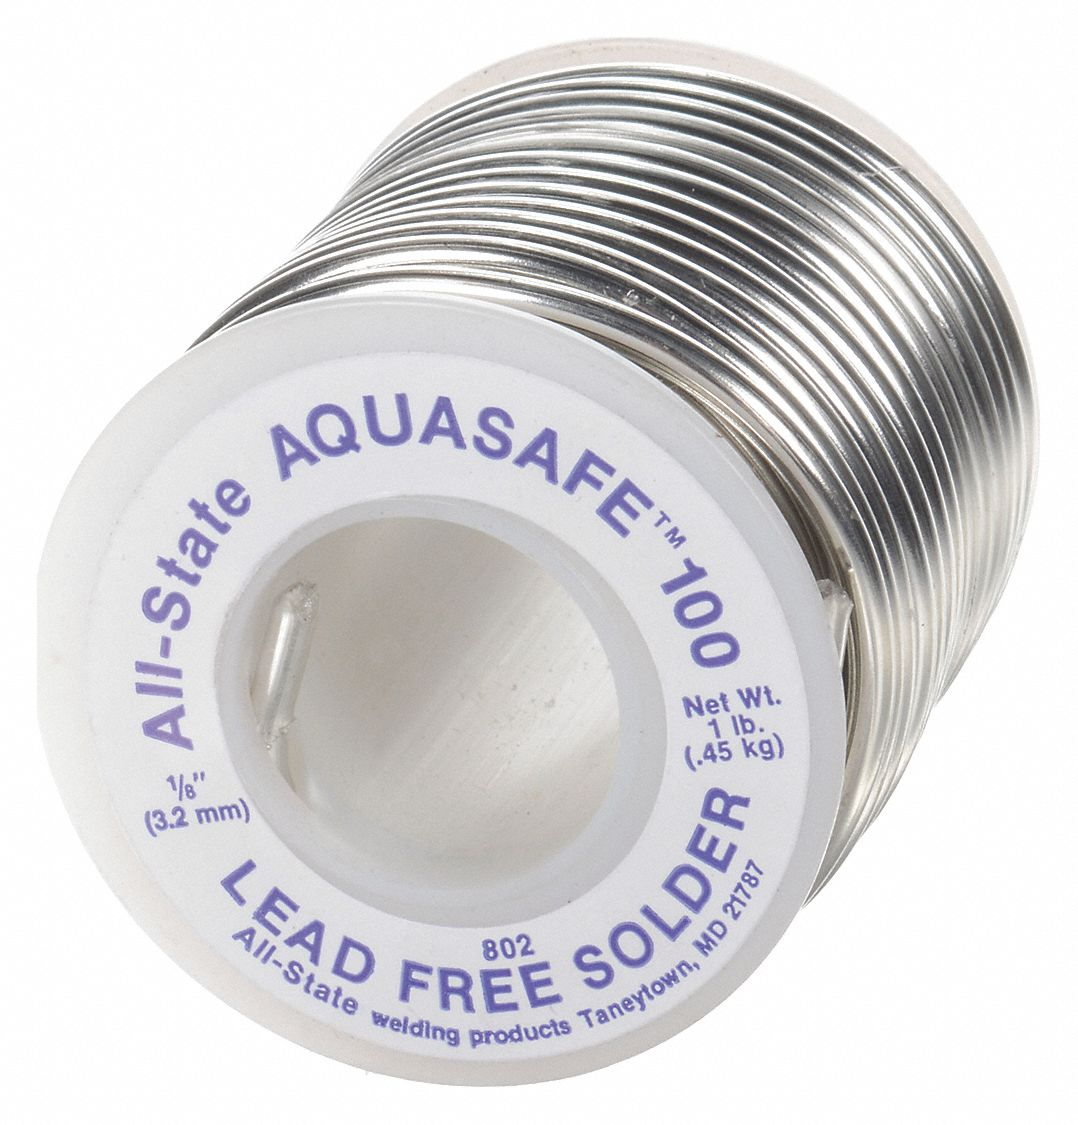 Aquasafe 100 Lead Free Solder 1/8In 1#